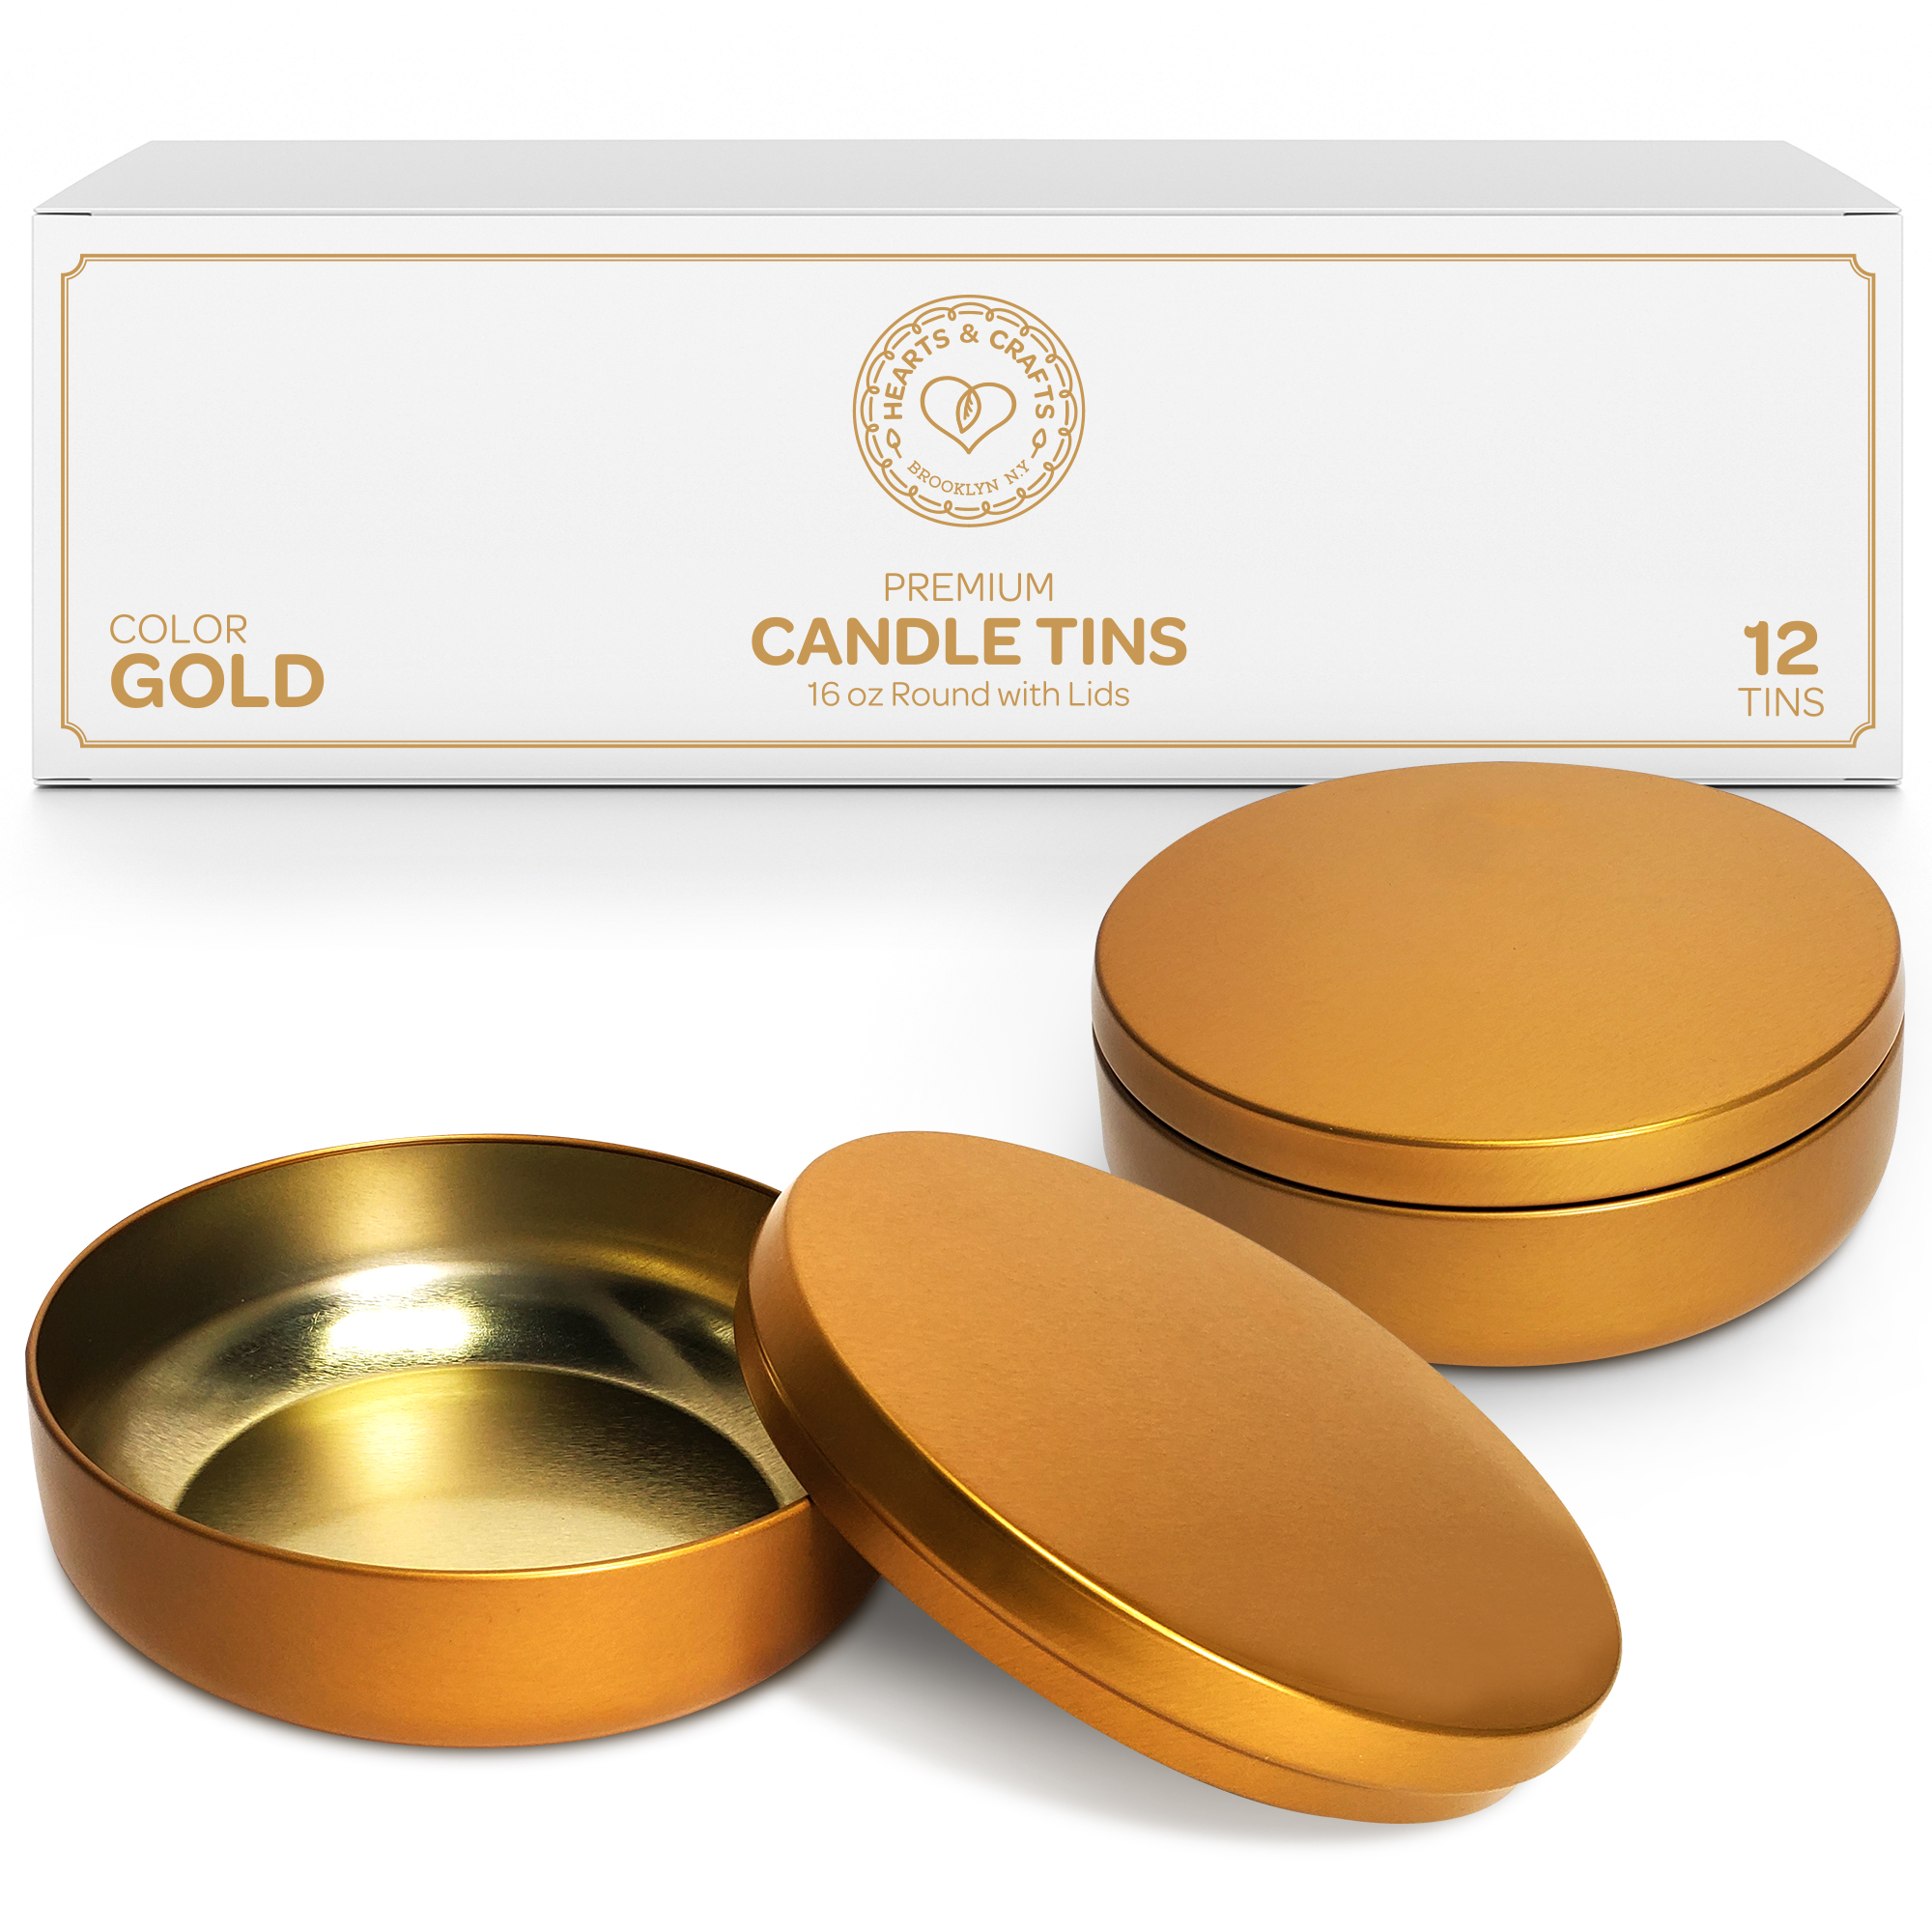 16oz Gold Candle Tins – 12 Count